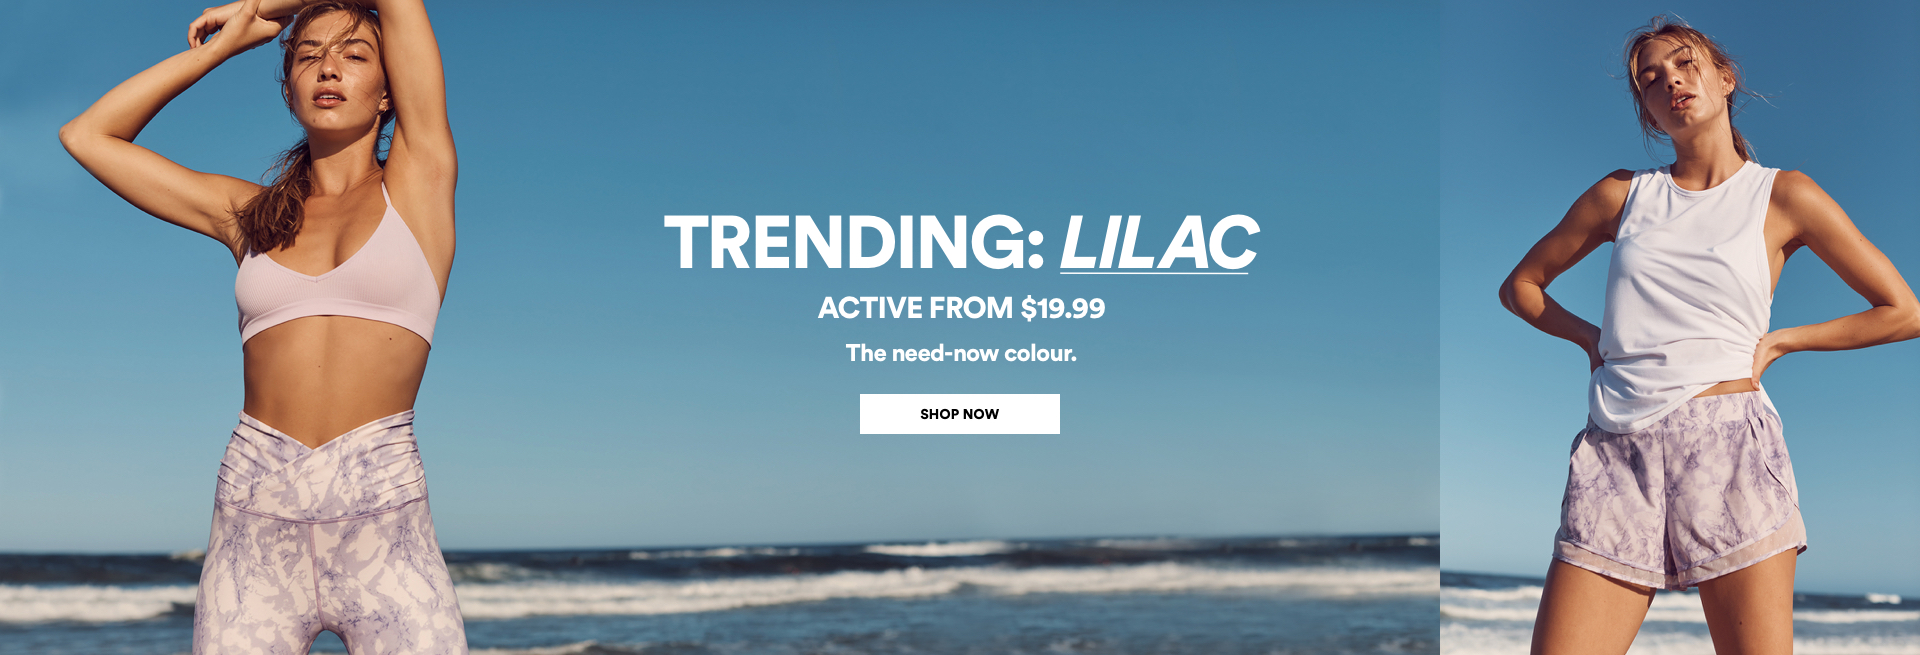 Trending: Lilac Activewear From $19.99. Click to Shop.